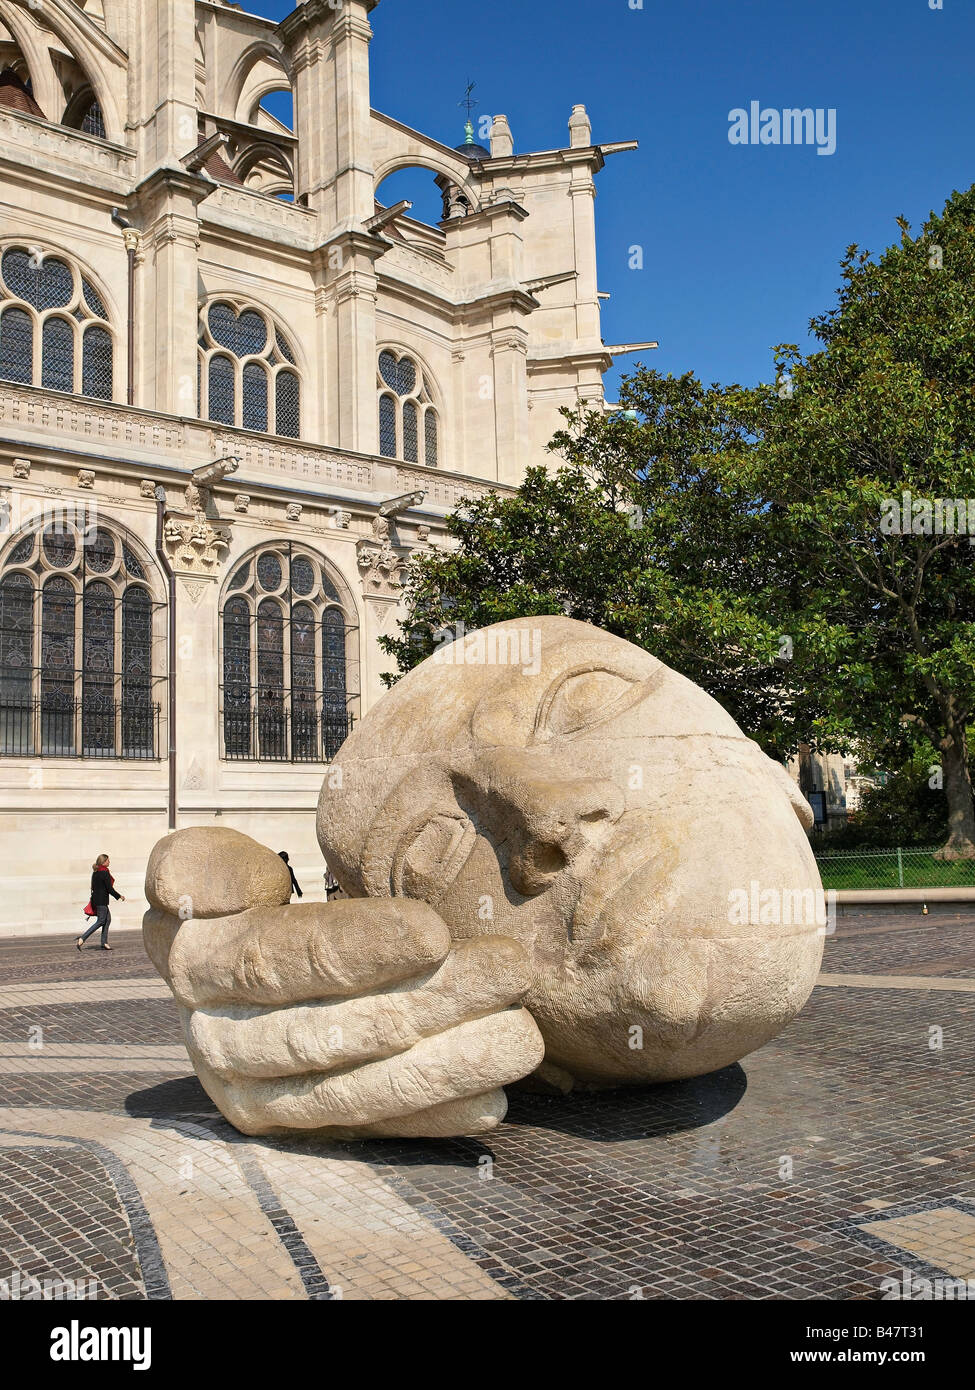 Sculpture in front of St Eustache church, Paris, France. - Stock Image